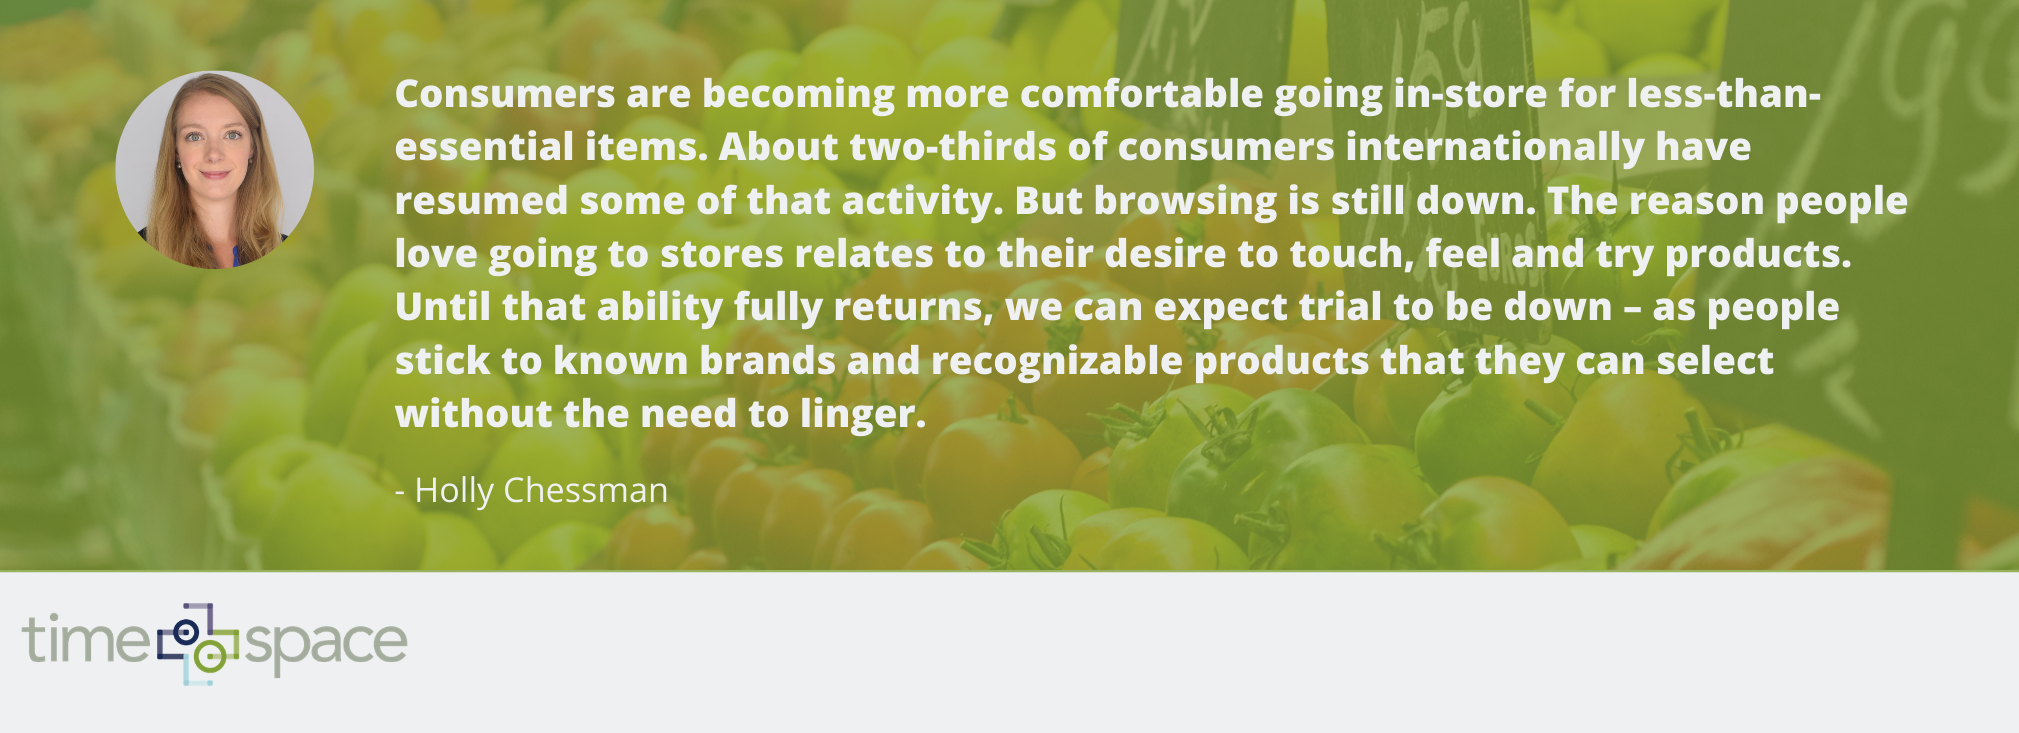 As the consumers habits change, our marketing strategies and media dollars need to follow suit. When looking at each of the types of shopper we want to show up in all phases of their decision journey w (5)